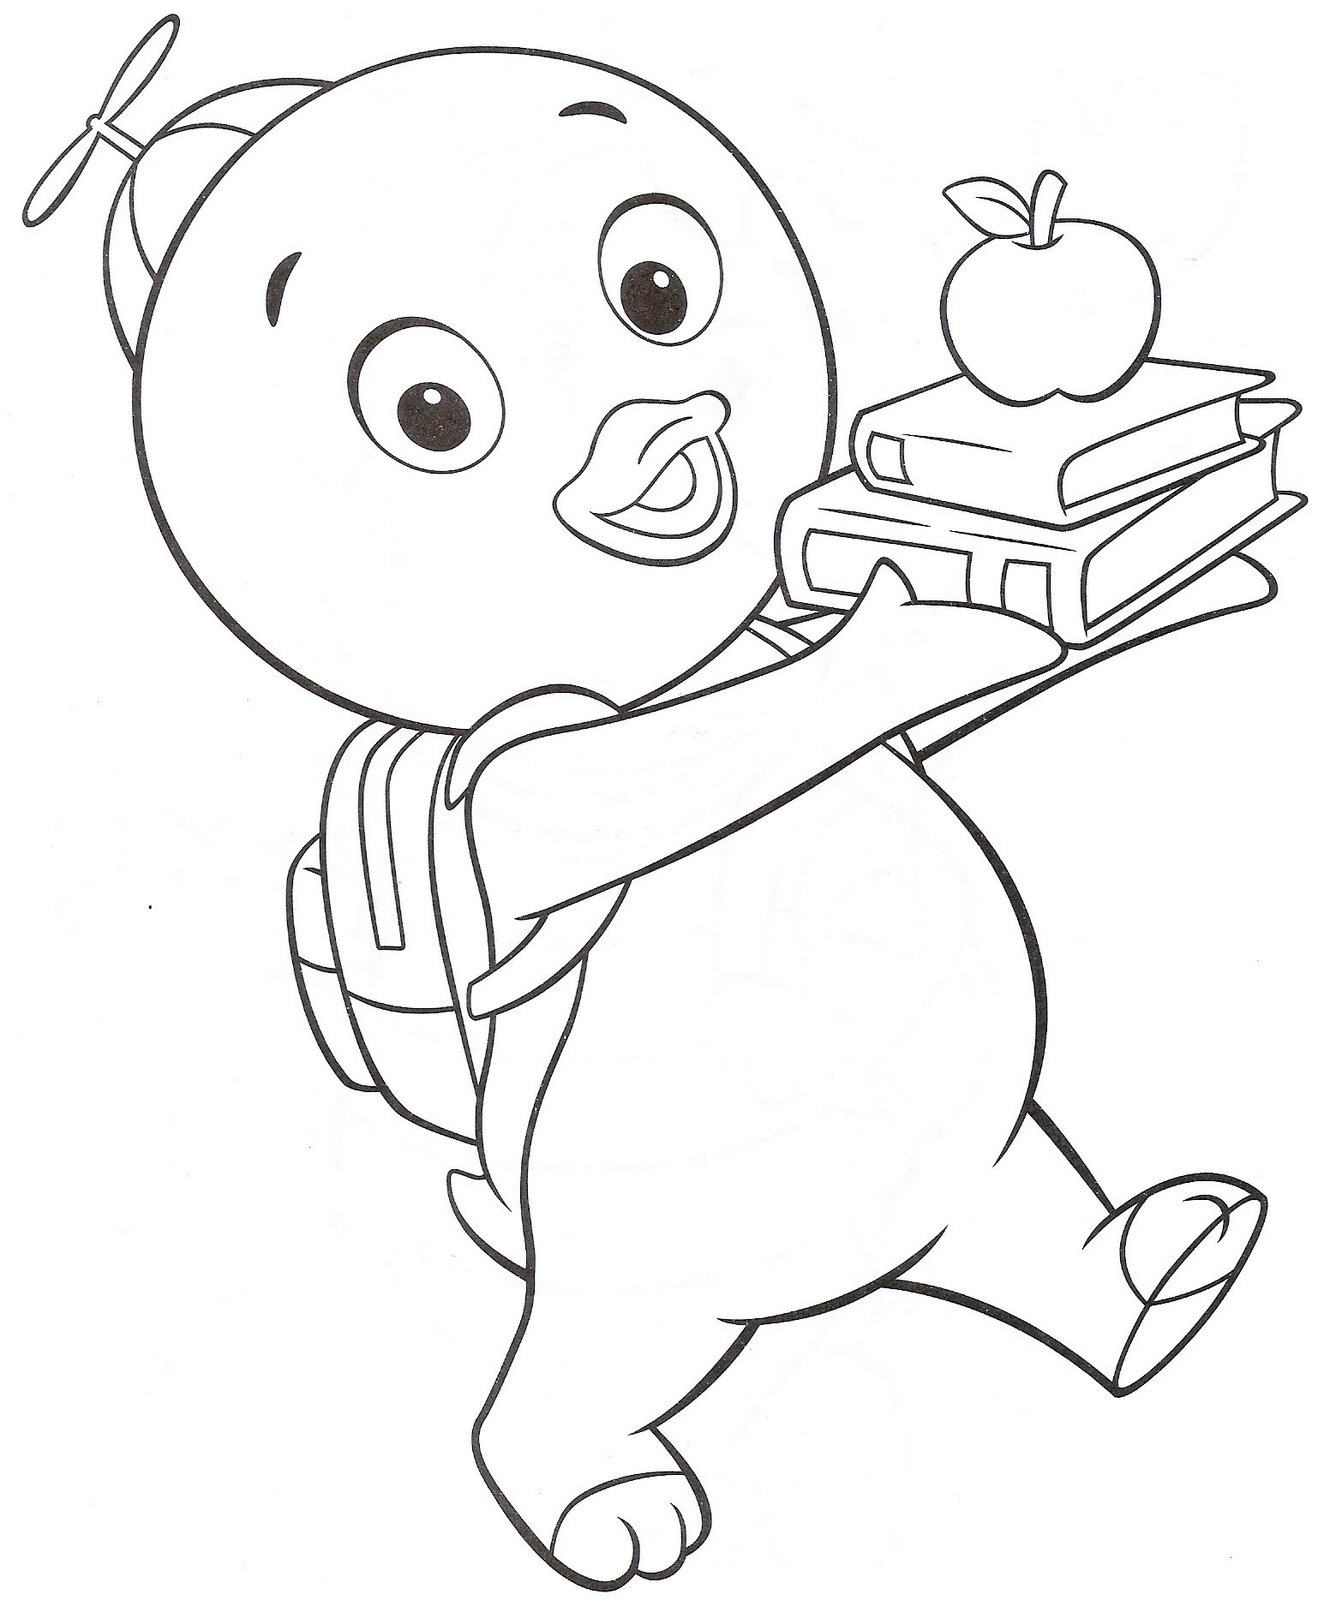 printable coloring pages for kids - free printable backyardigans coloring pages for kids